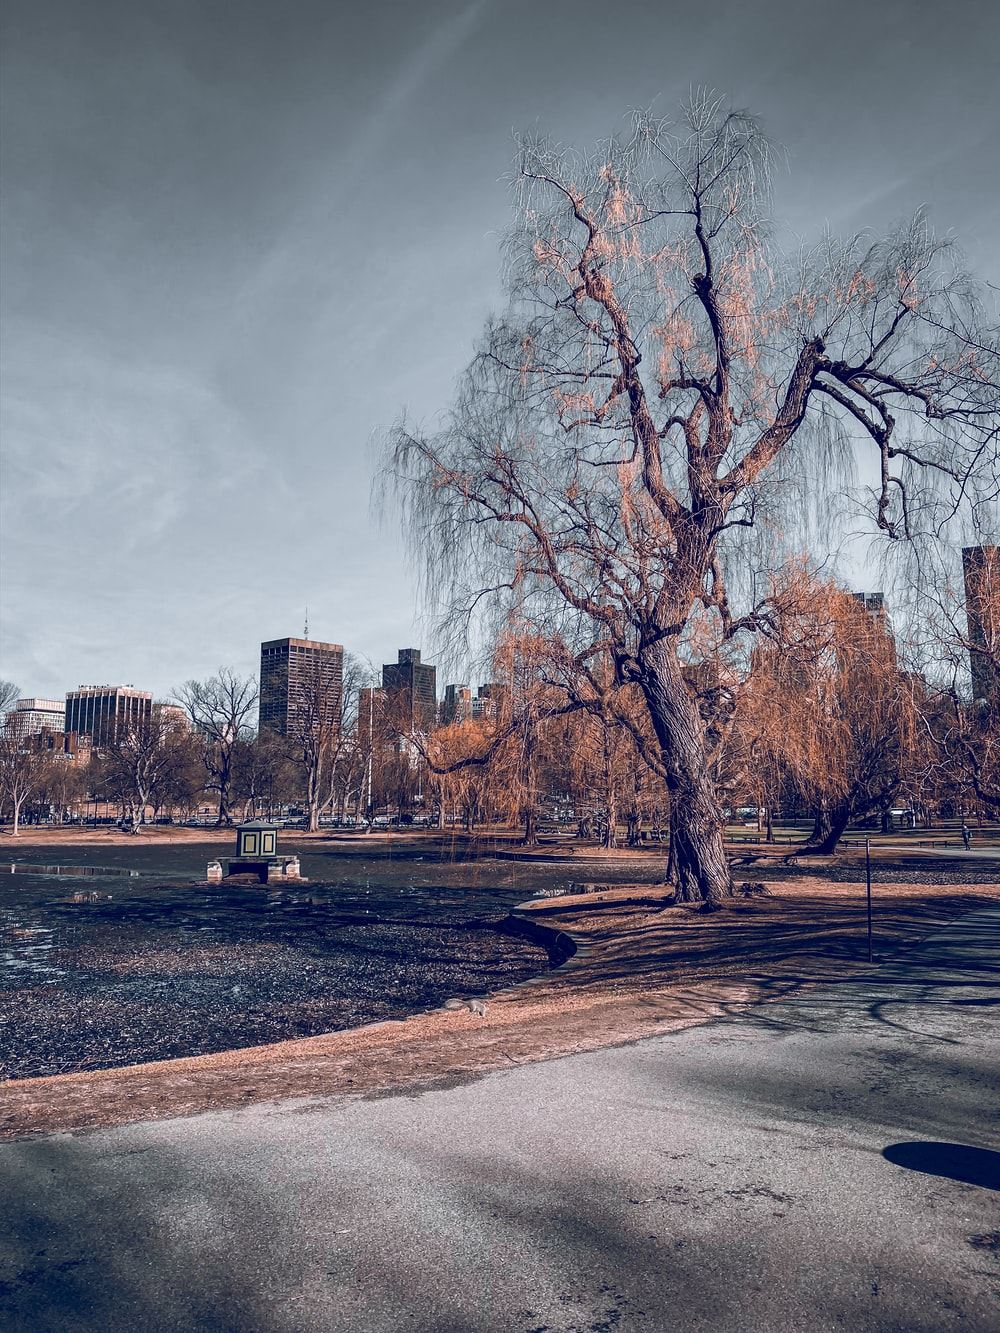 leafless trees near city buildings under cloudy sky during daytime